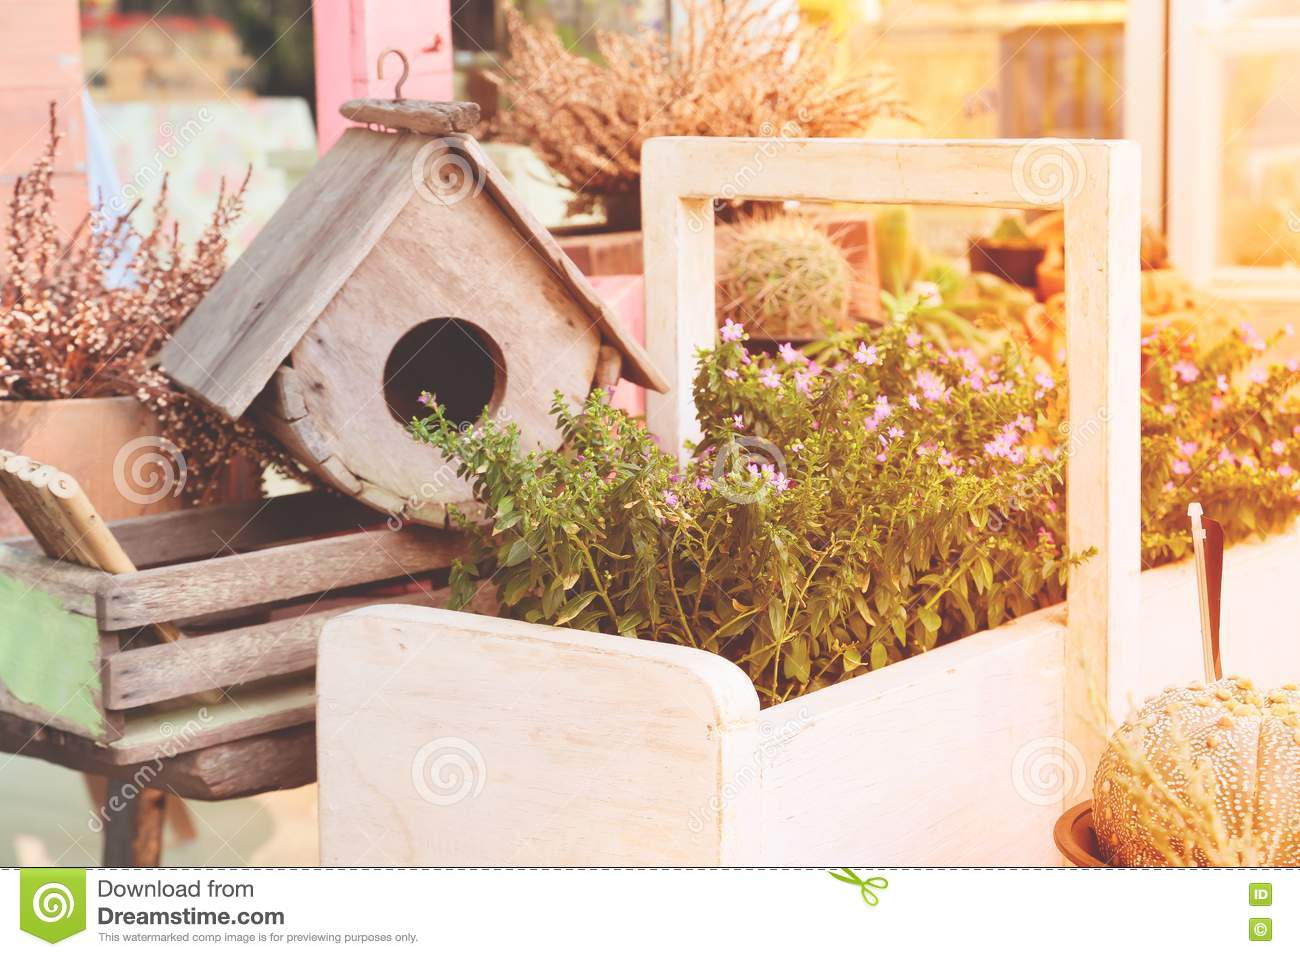 Garden Decoration With Bird House And Small Plants With Spring